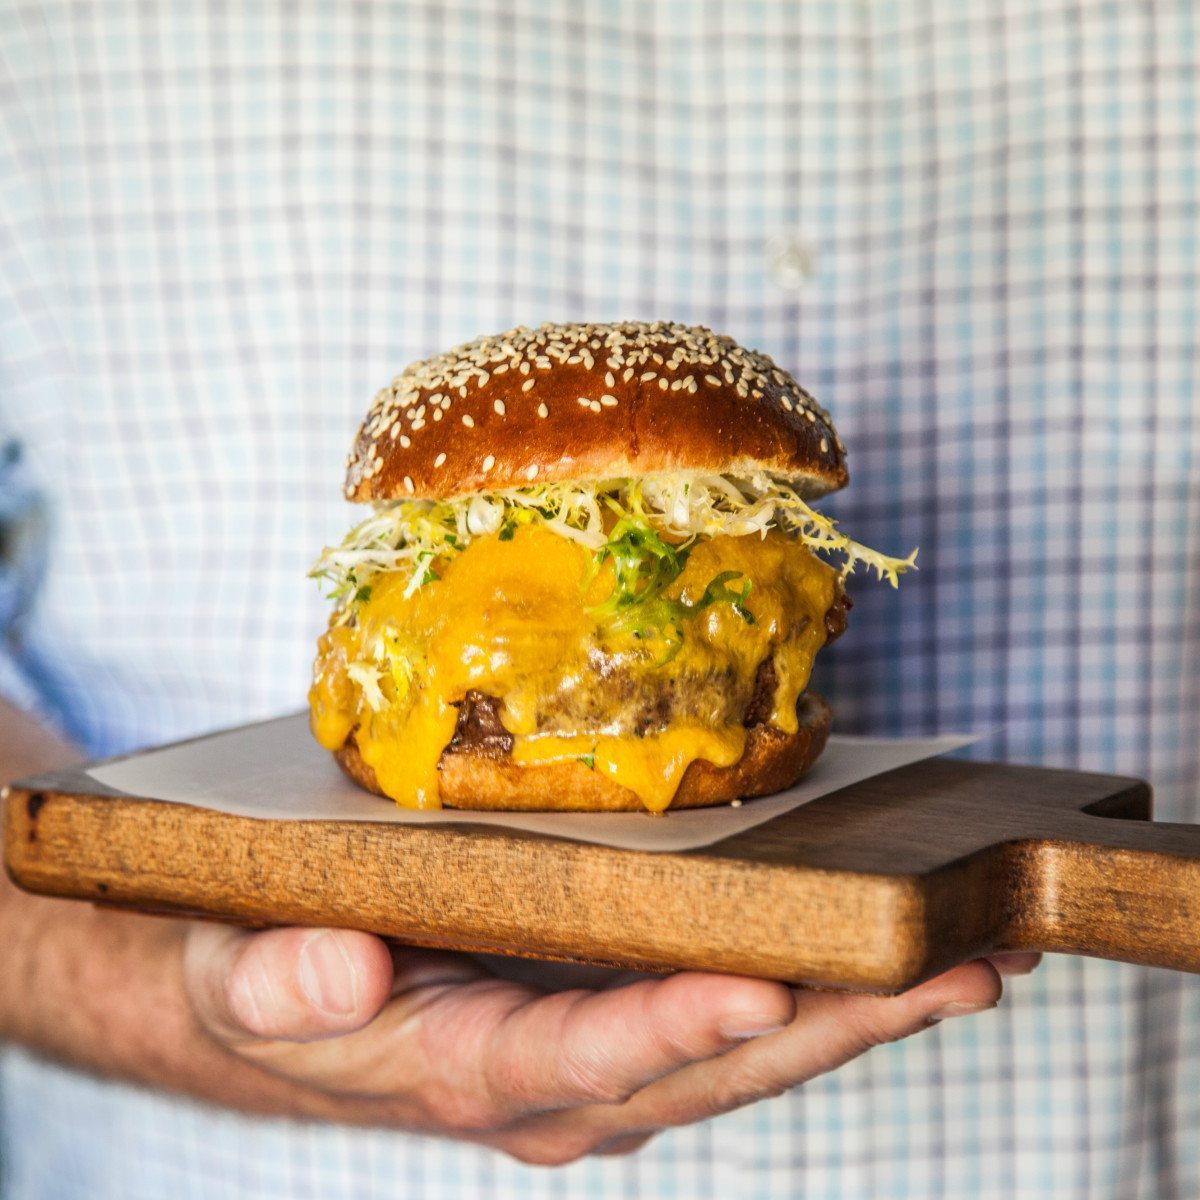 Goodall's Kitchen & Bar Austin restaurant Hotel Ella burger 2015